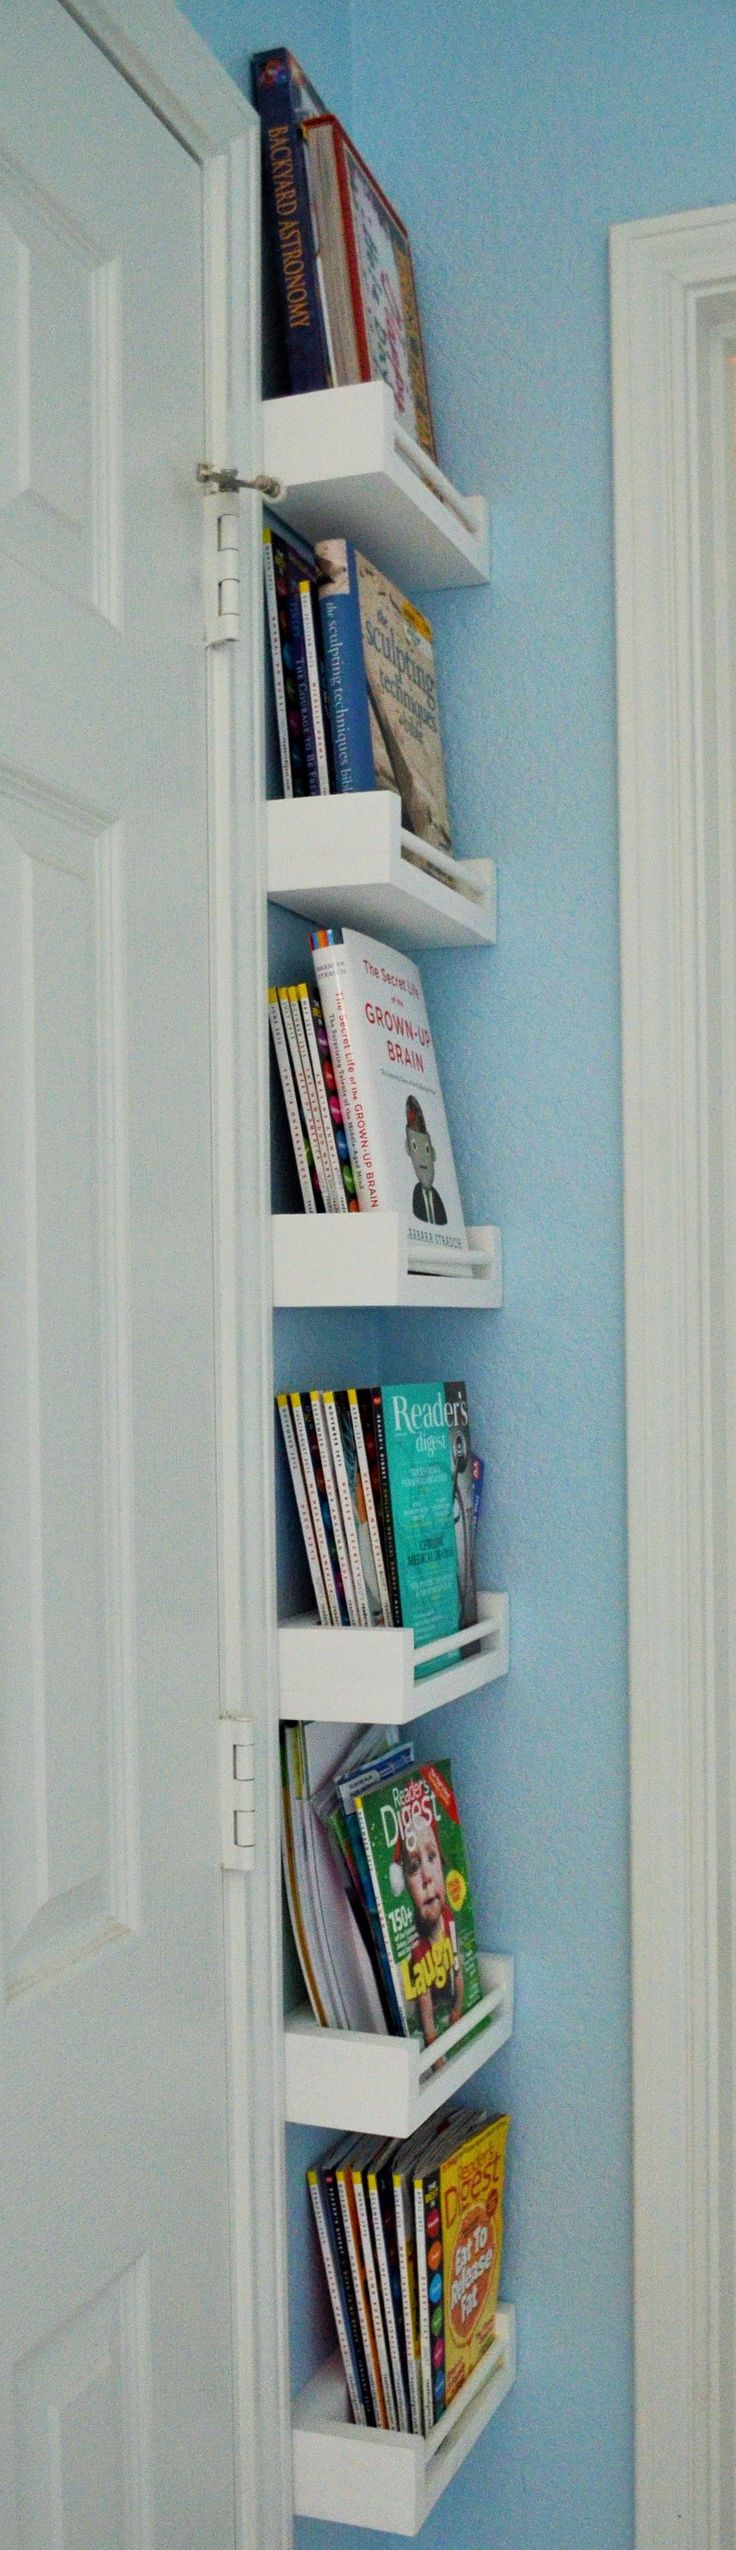 Bücherregal für kleine Ecken und hohe Decken. Small Corner Bookshelves. Work great for behind door in playroom